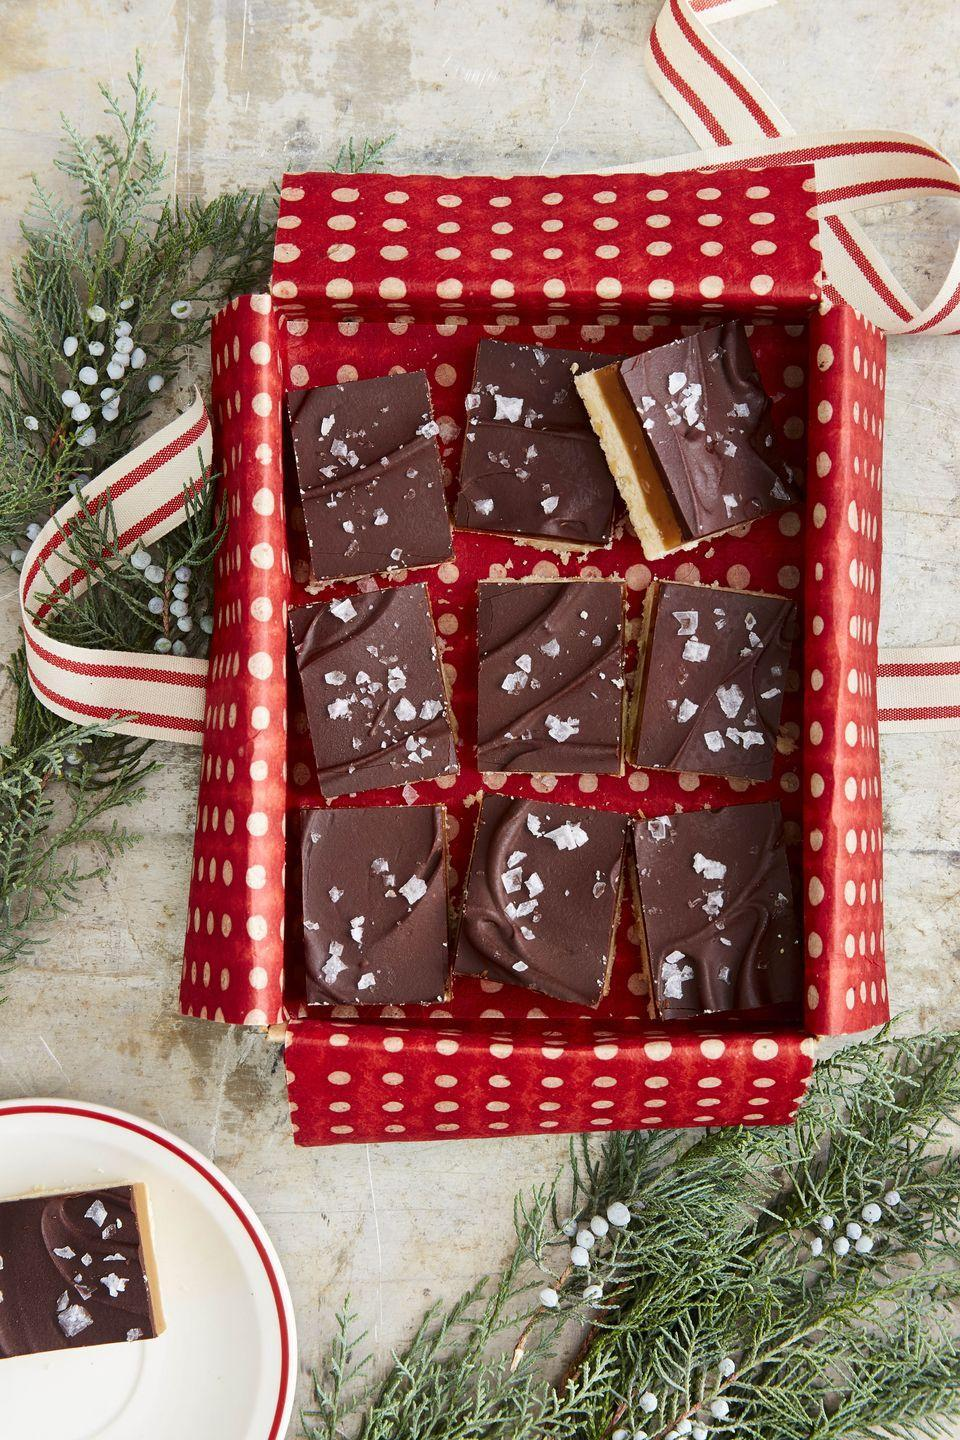 """<p>What could be better than three layers of deliciousness—shortbread, caramel, and chocolate? Make a batch and feel like the fancy person you are!</p><p><strong><a href=""""https://www.countryliving.com/food-drinks/a34331924/millionaires-shortbread-recipe/"""" rel=""""nofollow noopener"""" target=""""_blank"""" data-ylk=""""slk:Get the recipe"""" class=""""link rapid-noclick-resp"""">Get the recipe</a>.</strong> </p>"""